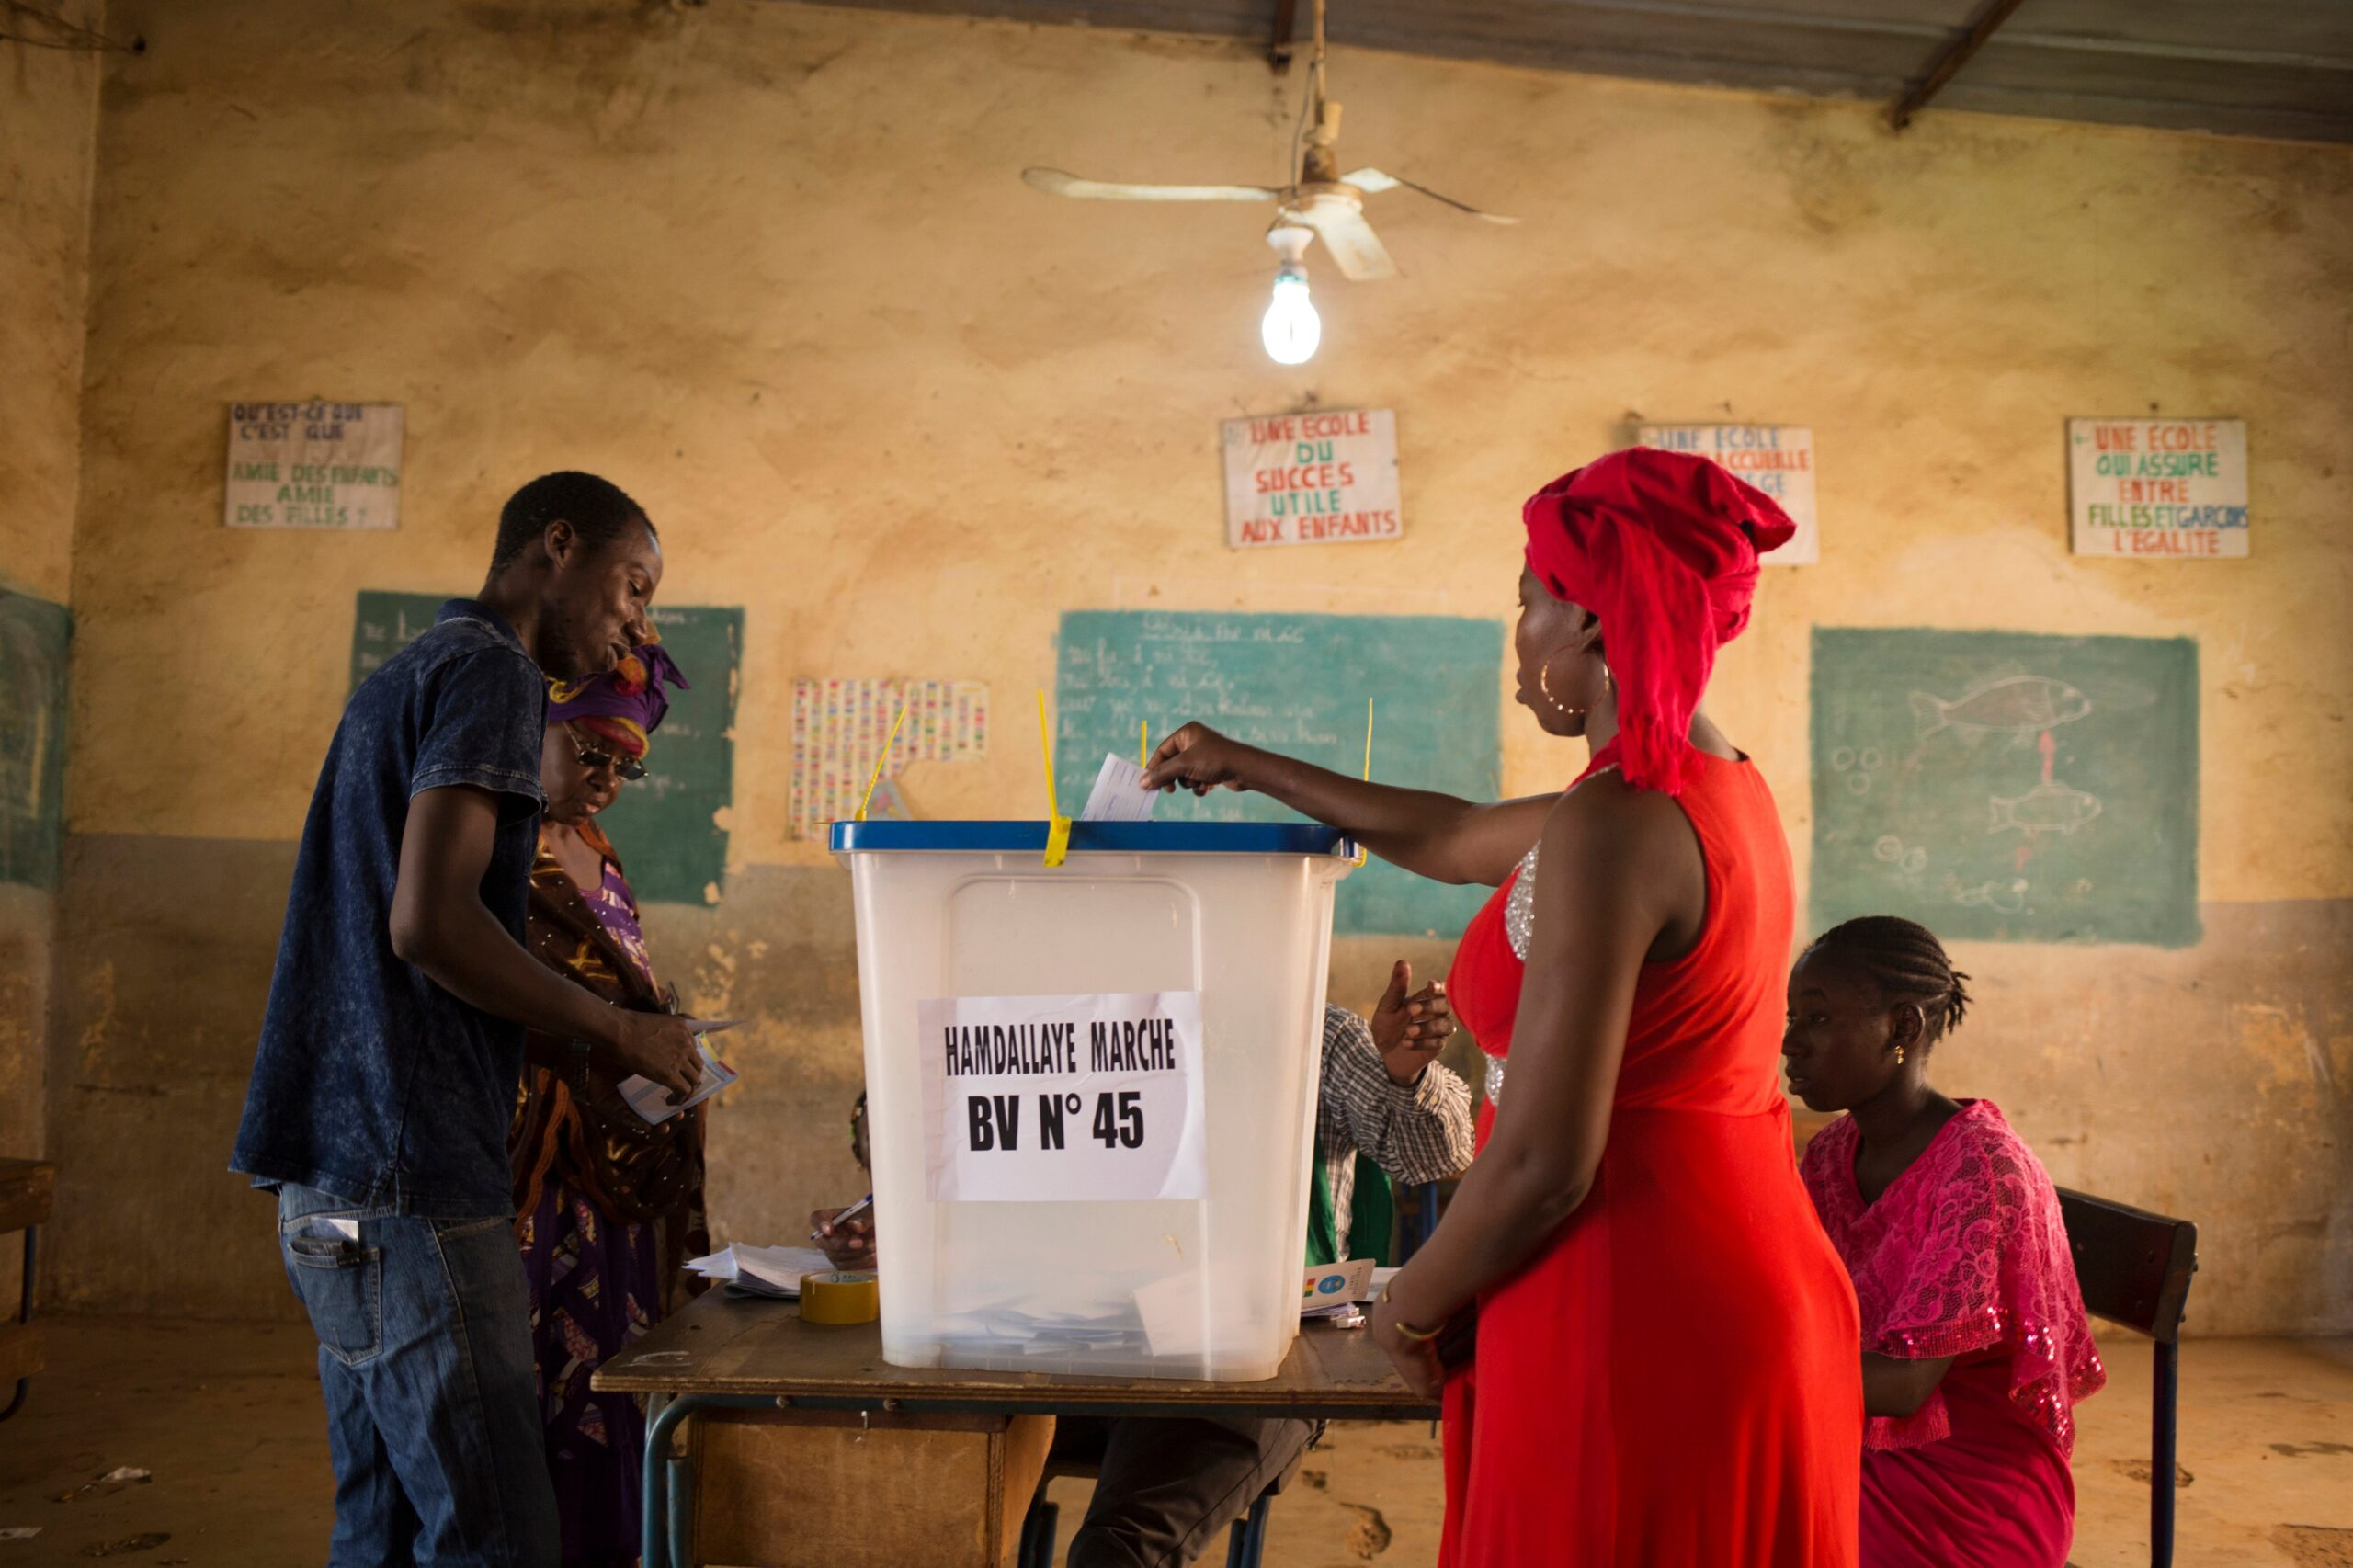 French foreign minister says Paris insists on new elections in Mali